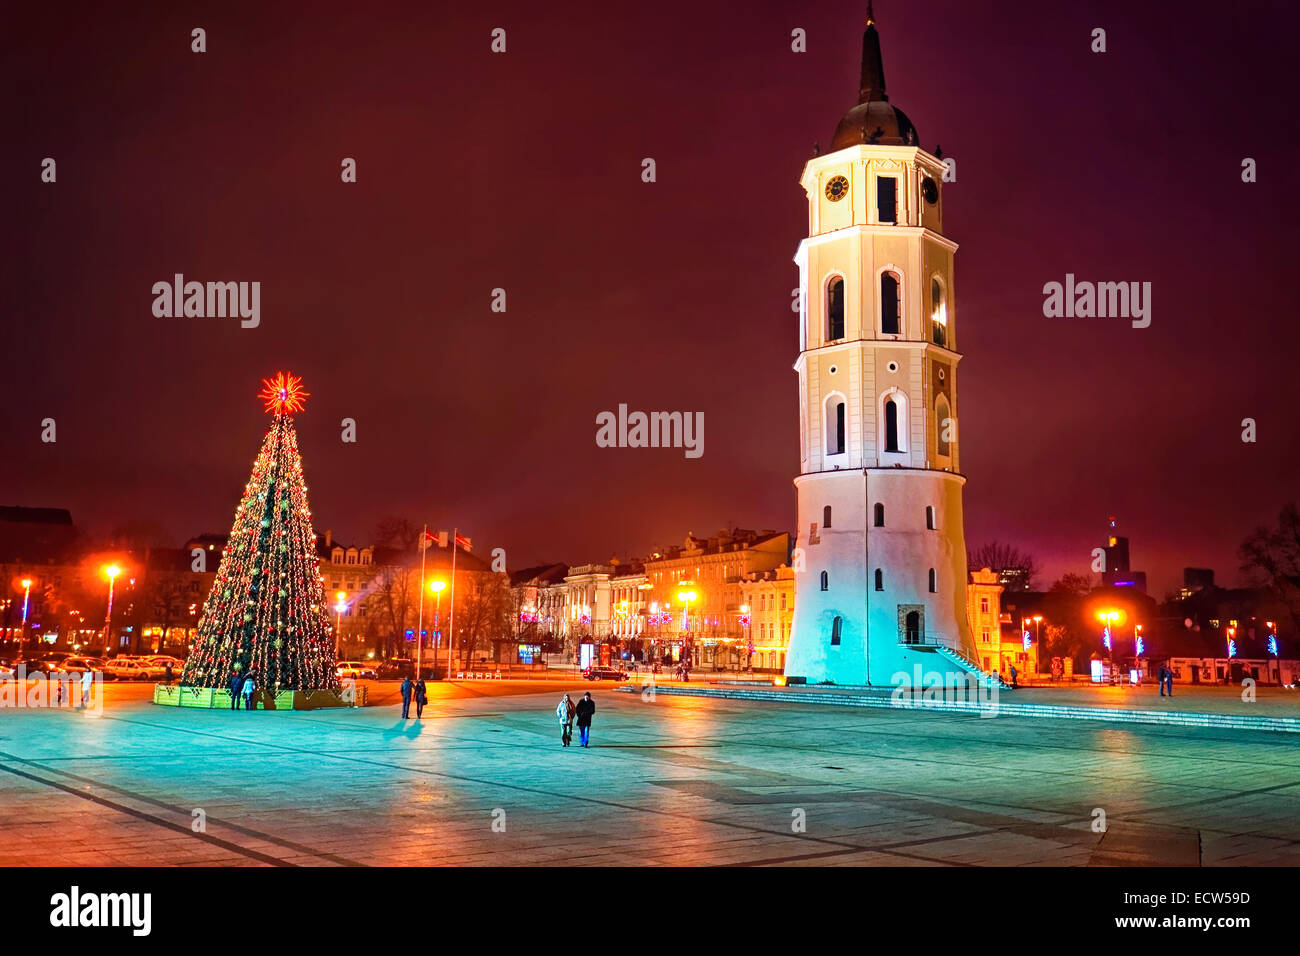 Cathedral square in Vilnius city at Christmas week - Stock Image